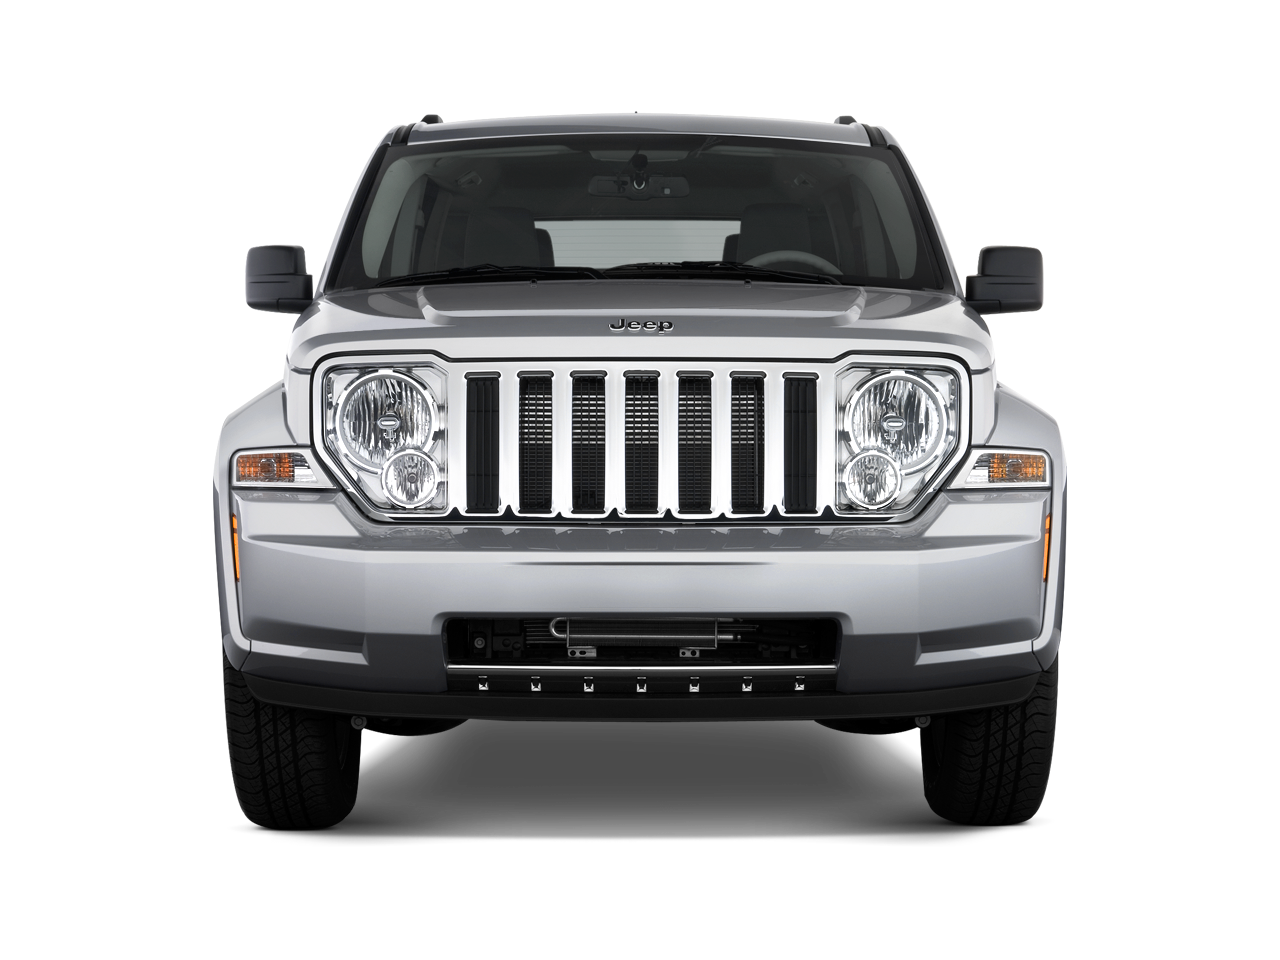 2010 jeep liberty renegade - editor's notebook - automobile magazine